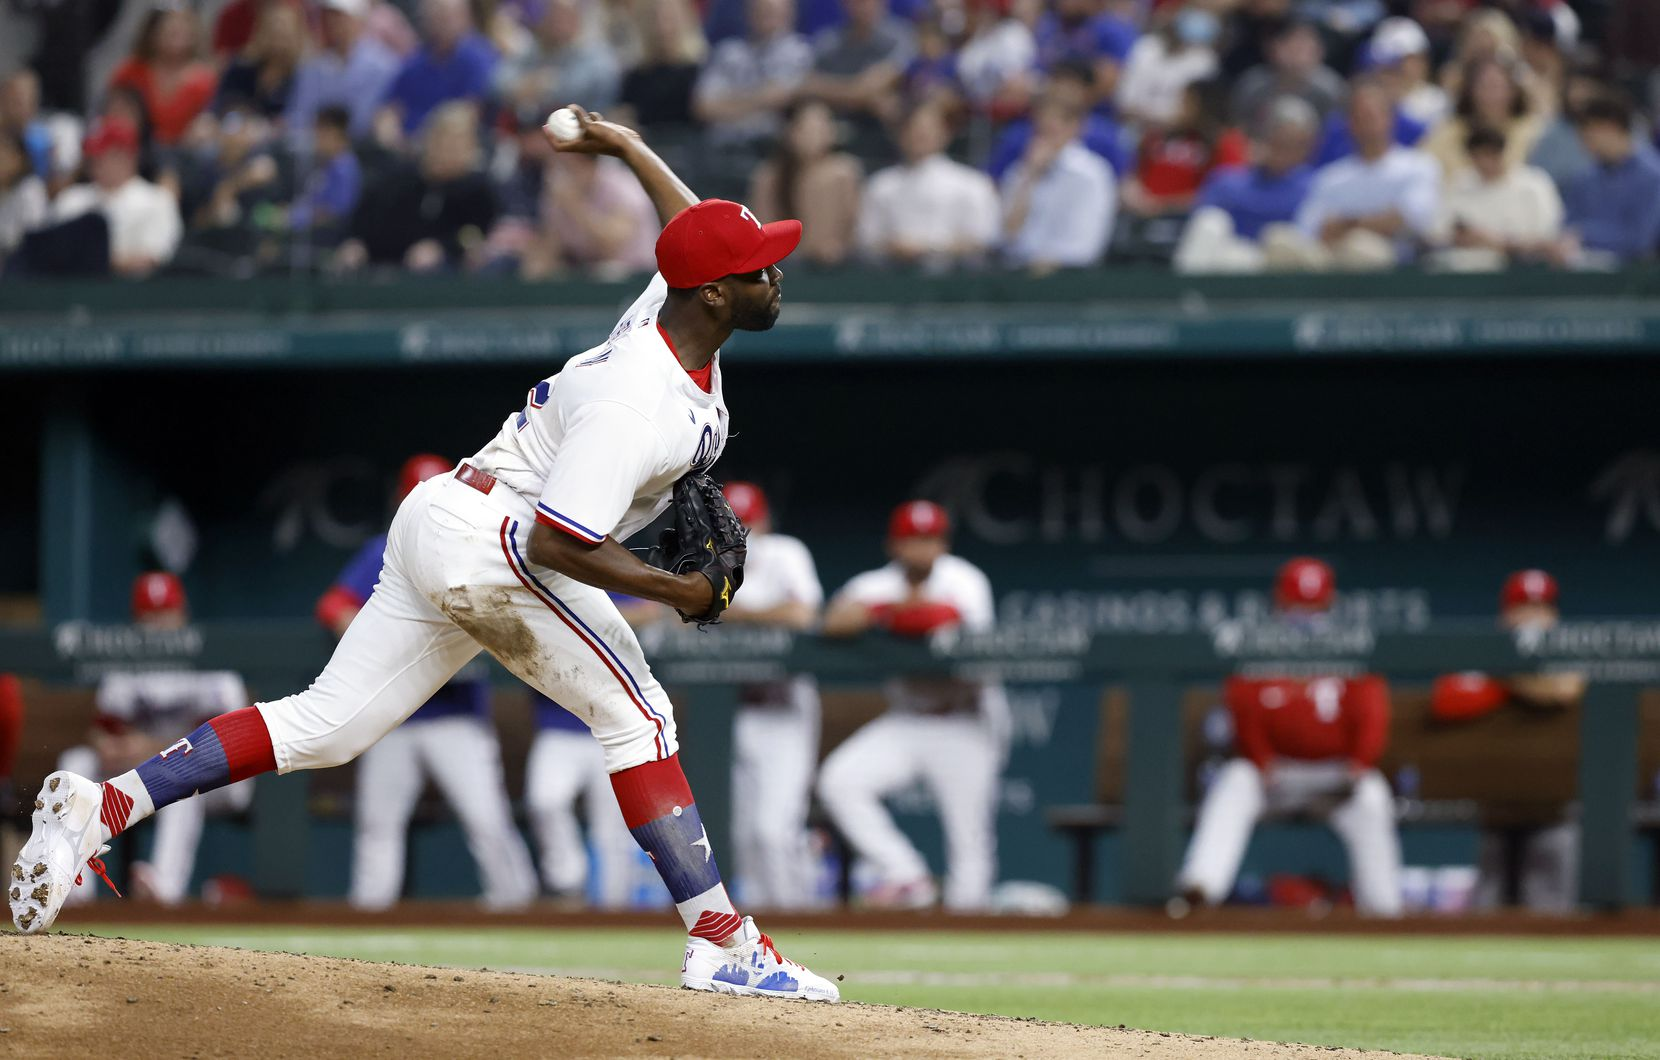 Texas Rangers starting pitcher Taylor Hearn (52) throws against the Toronto Blue Jays during seventh inning at Globe Life Field in Arlington, Tuesday, April 7, 2021. (Tom Fox/The Dallas Morning News)